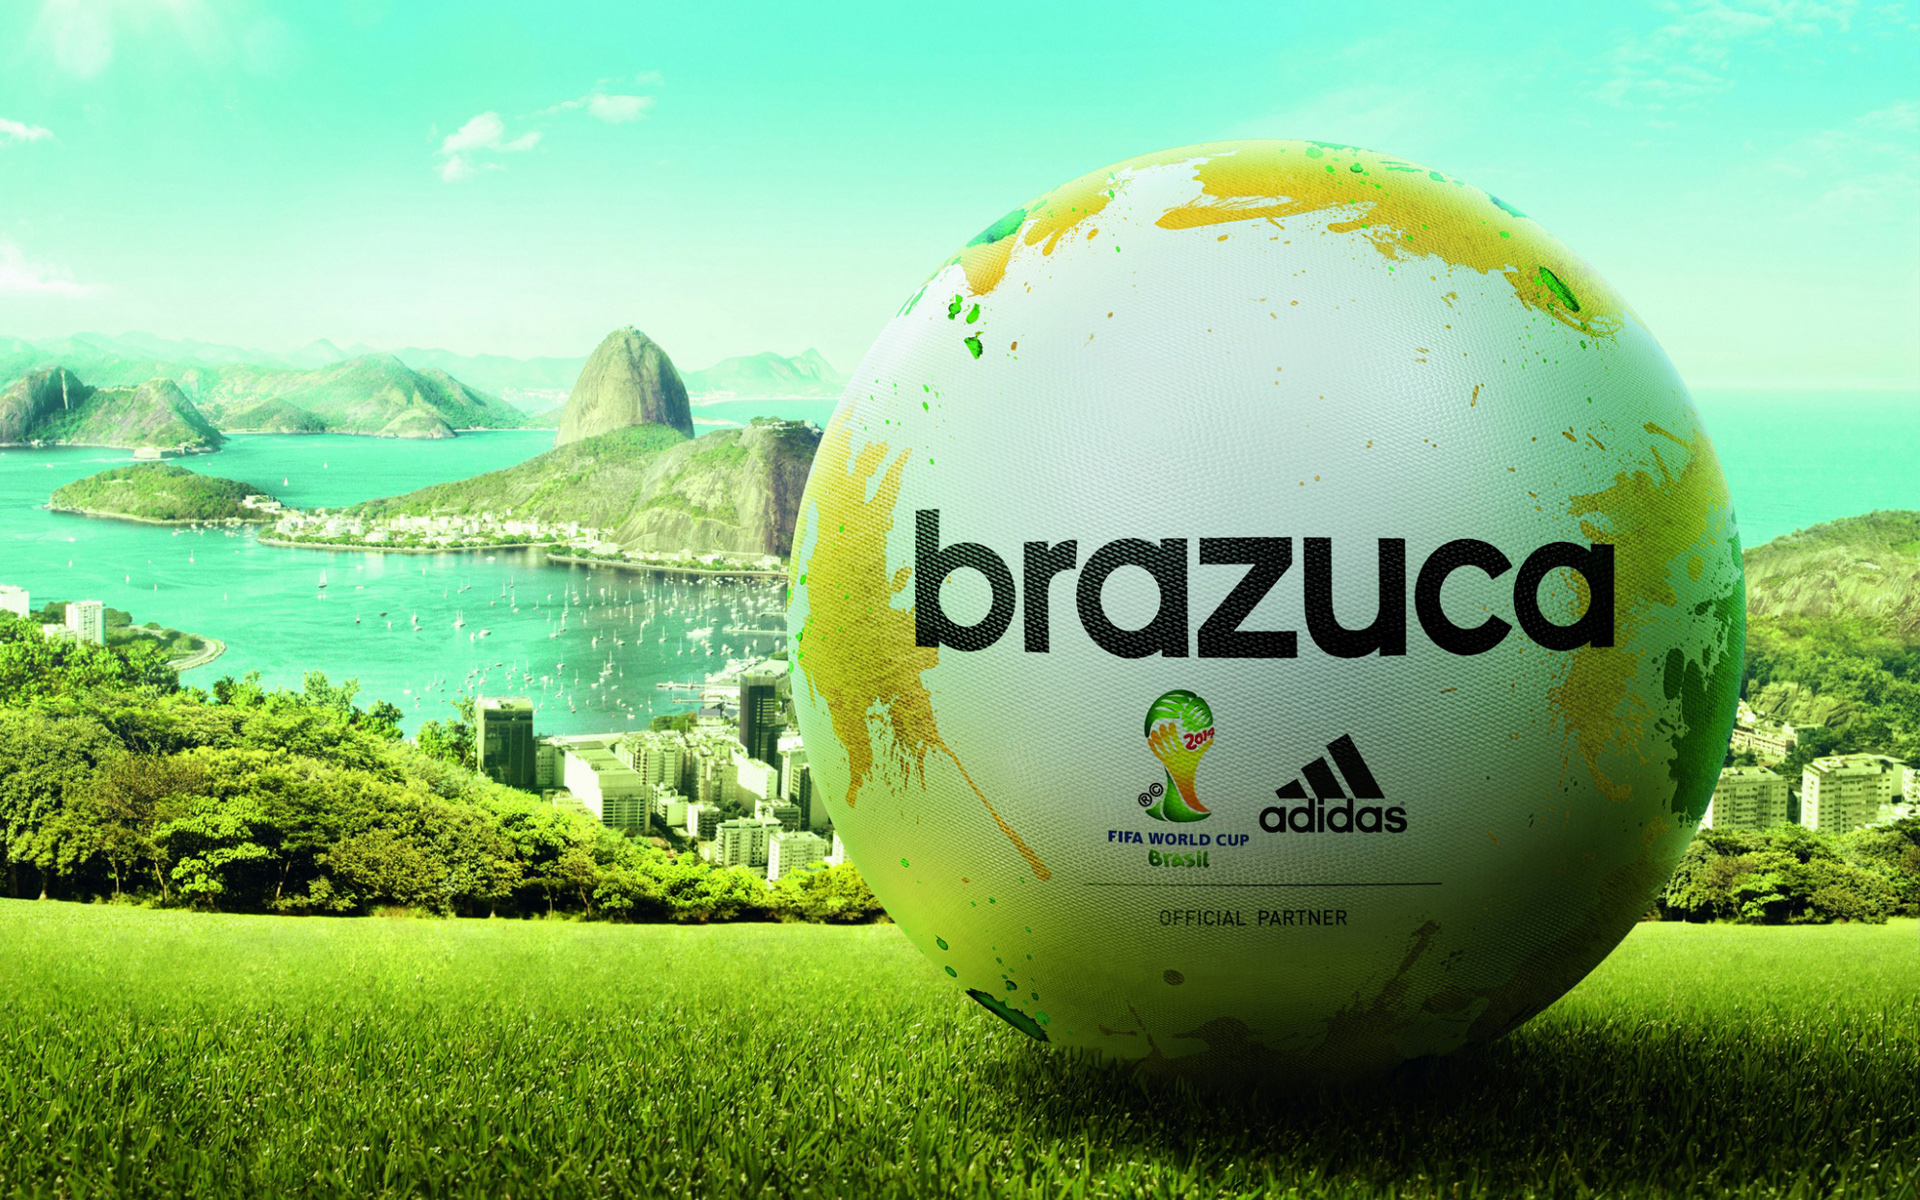 Adidas Brazuca Football Hd Sports 4k Wallpapers Images Backgrounds Photos And Pictures